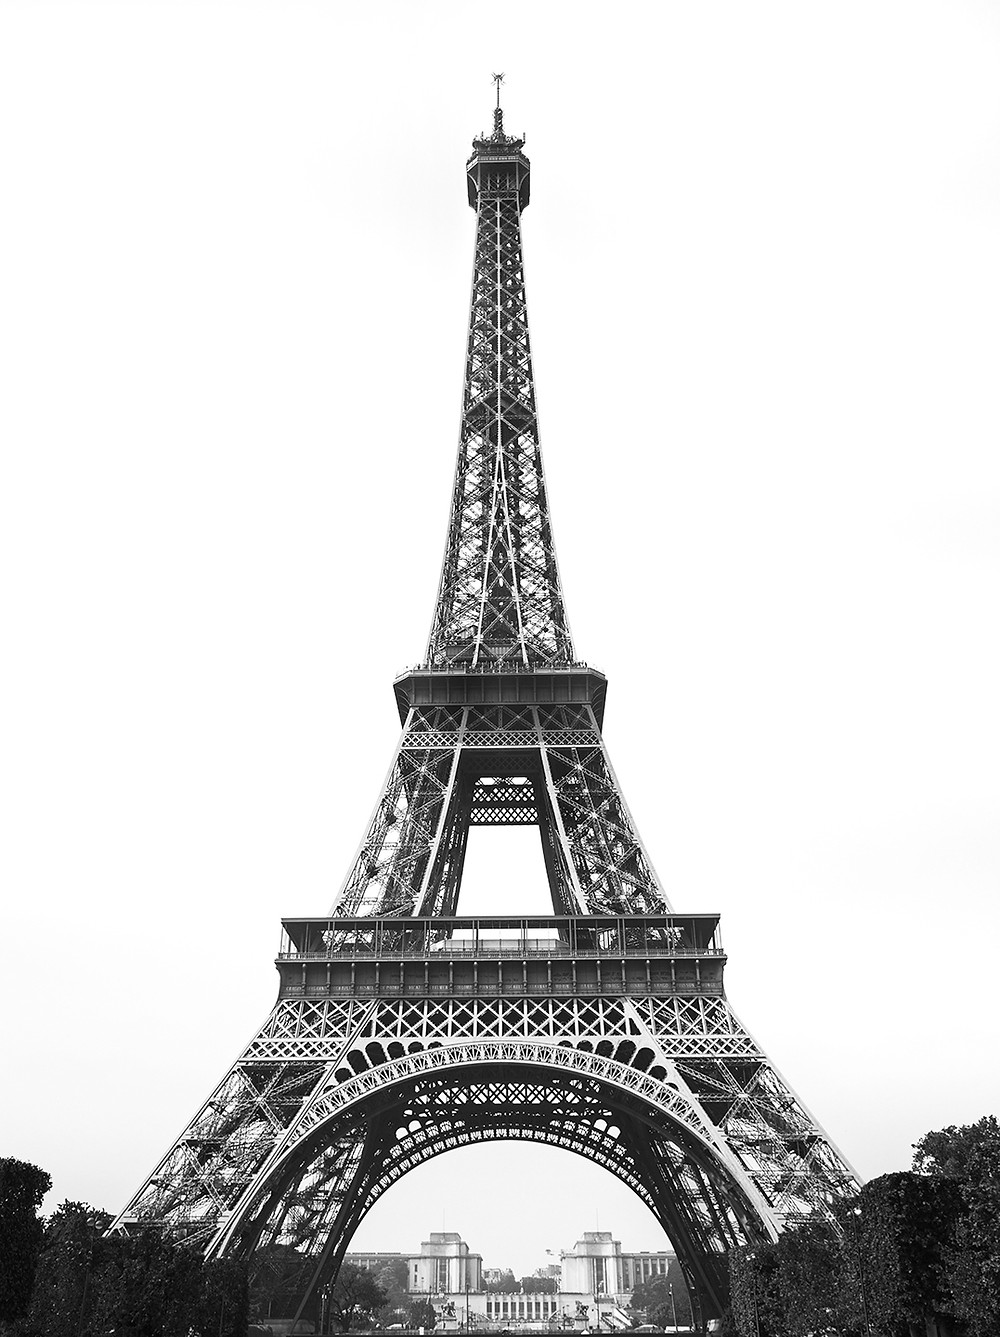 A direct angle of the Eiffel Tower in black and white.